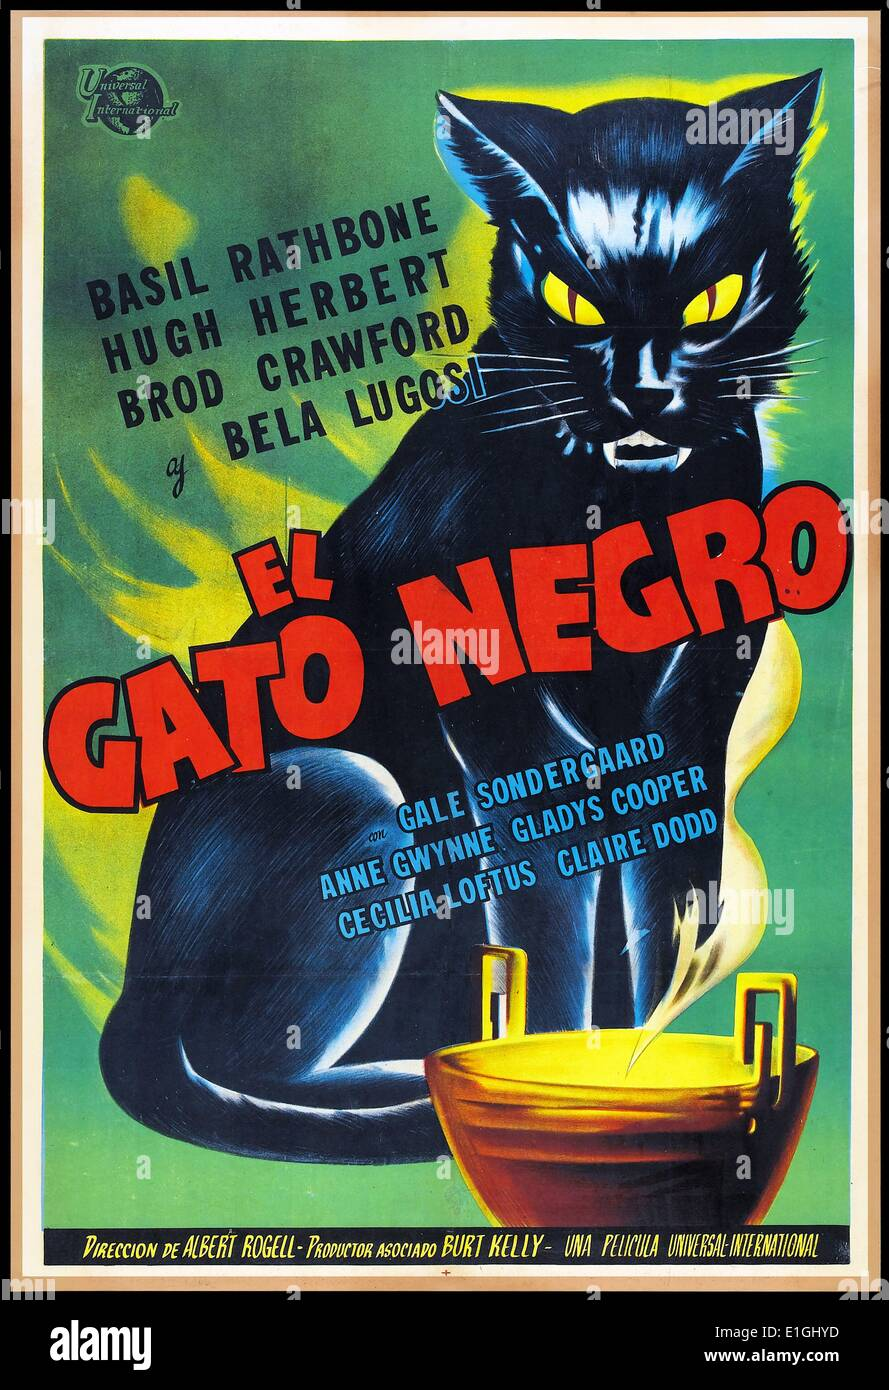 El Gato Negro Spanish Film Poster For The Black Cat A 1941 Film Stock Photo Alamy